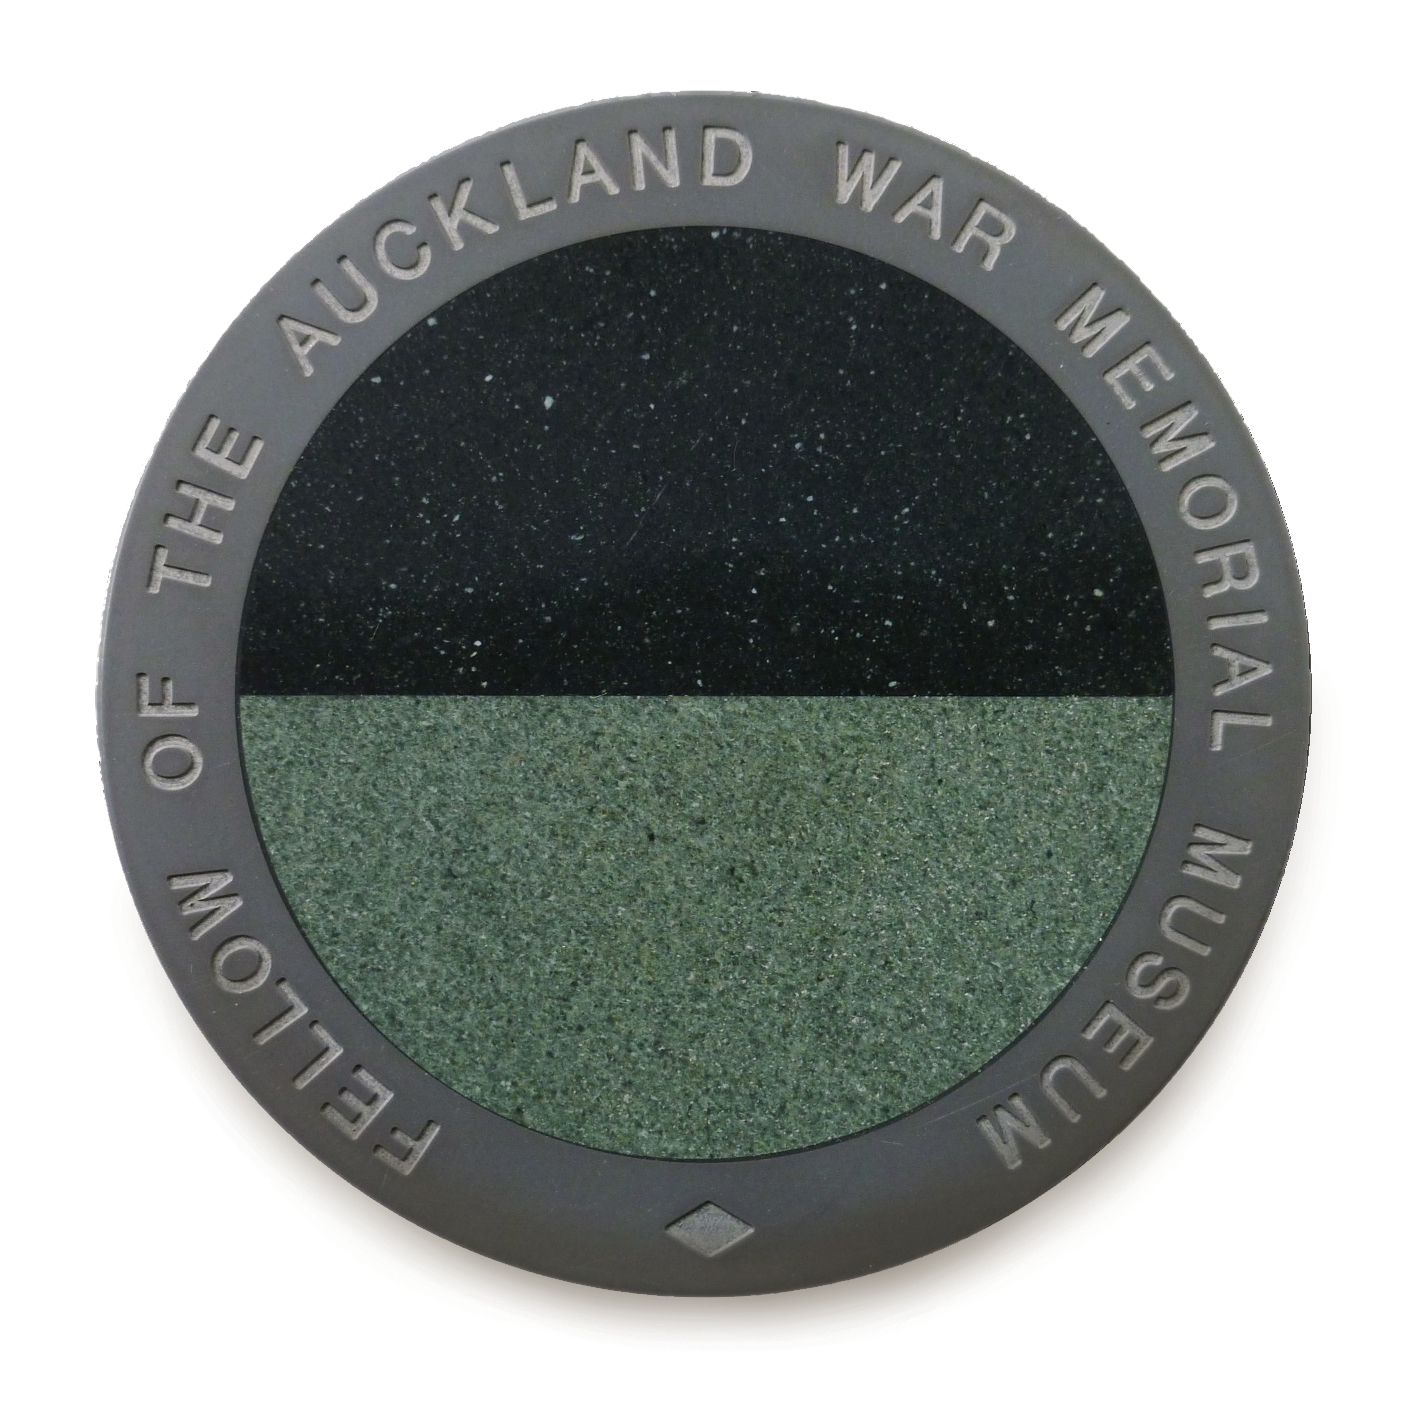 JOHN EDGAR<br>Coin of the Realm, Fellow of the Auckland War Memorial Museum 1999